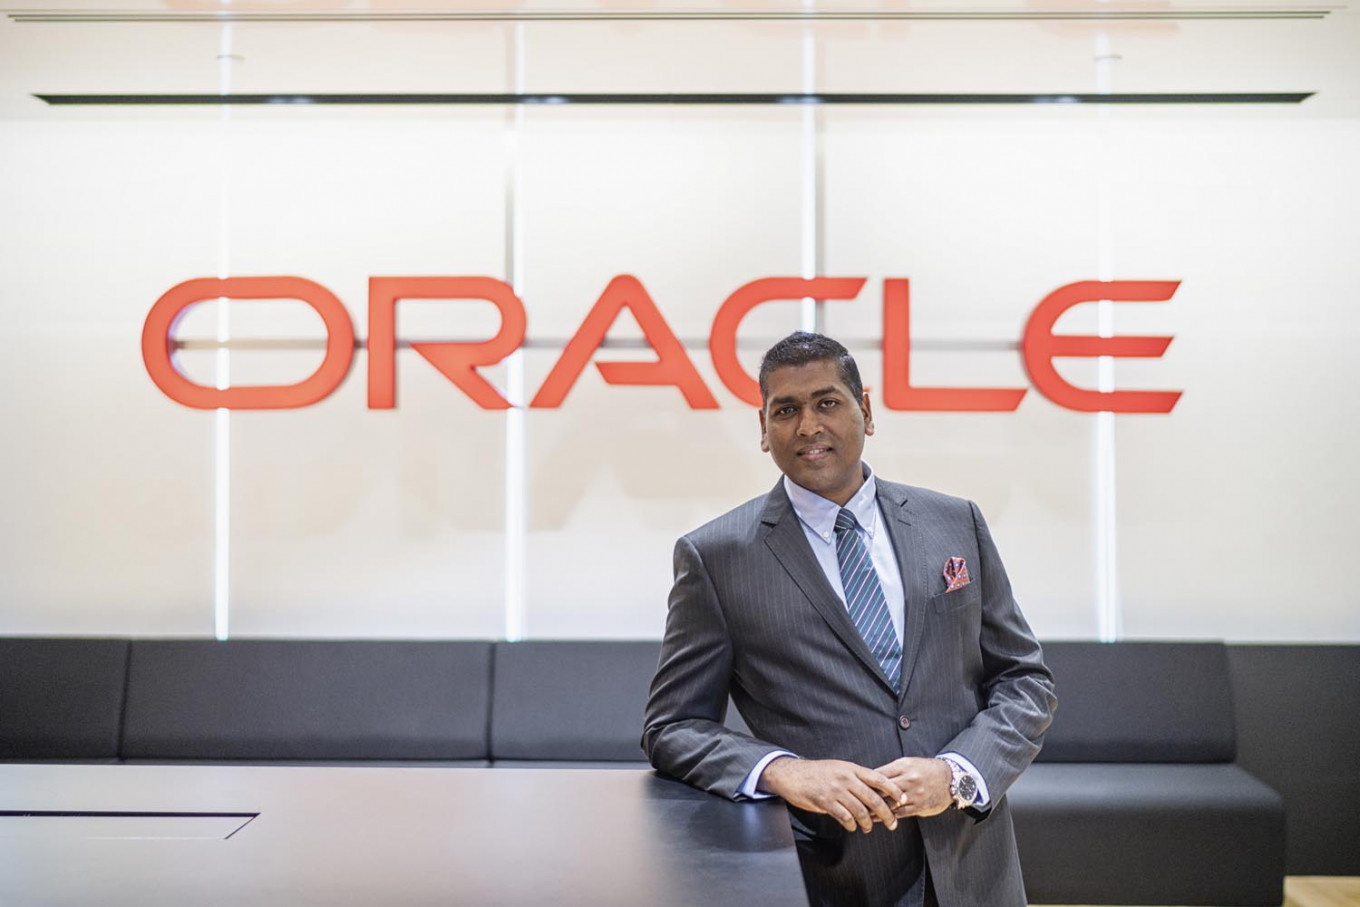 Cloud service boom will continue: Oracle